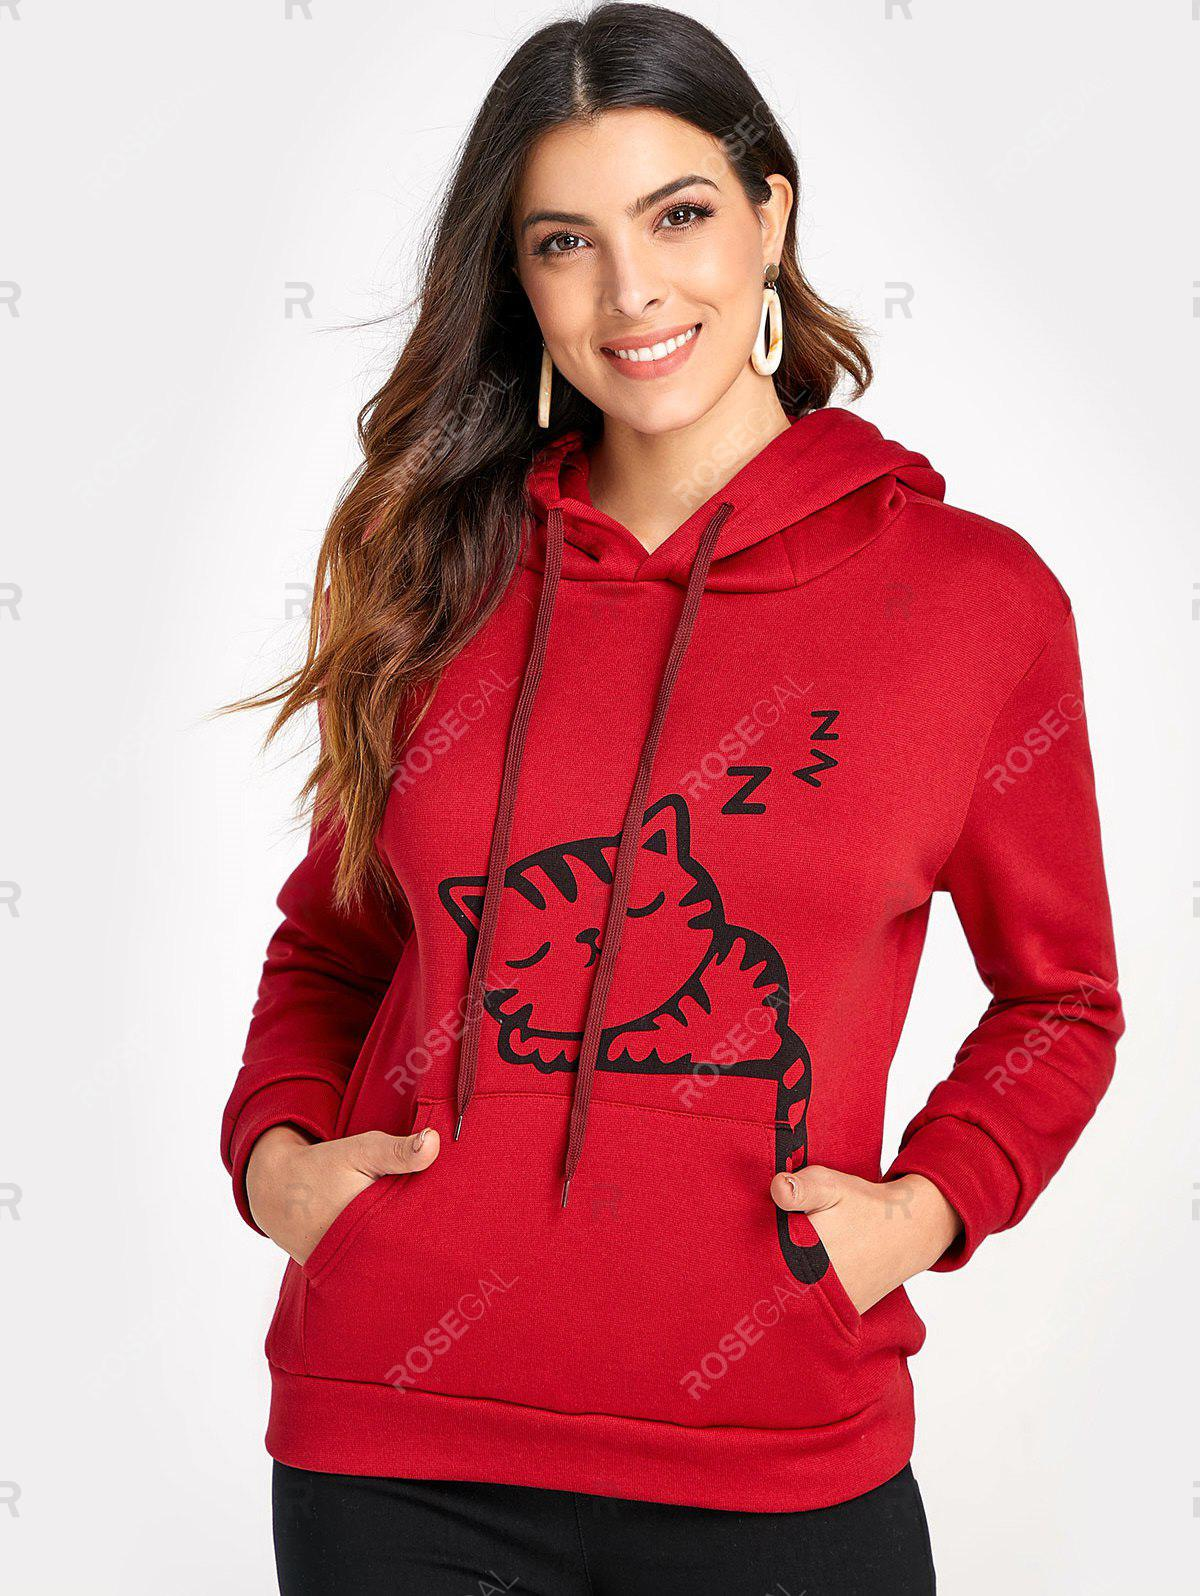 https://www.rosegal.com/sweatshirts-hoodies/kangaroo-pocket-cat-ear-hoodie-2403330.html?lkid=16127505